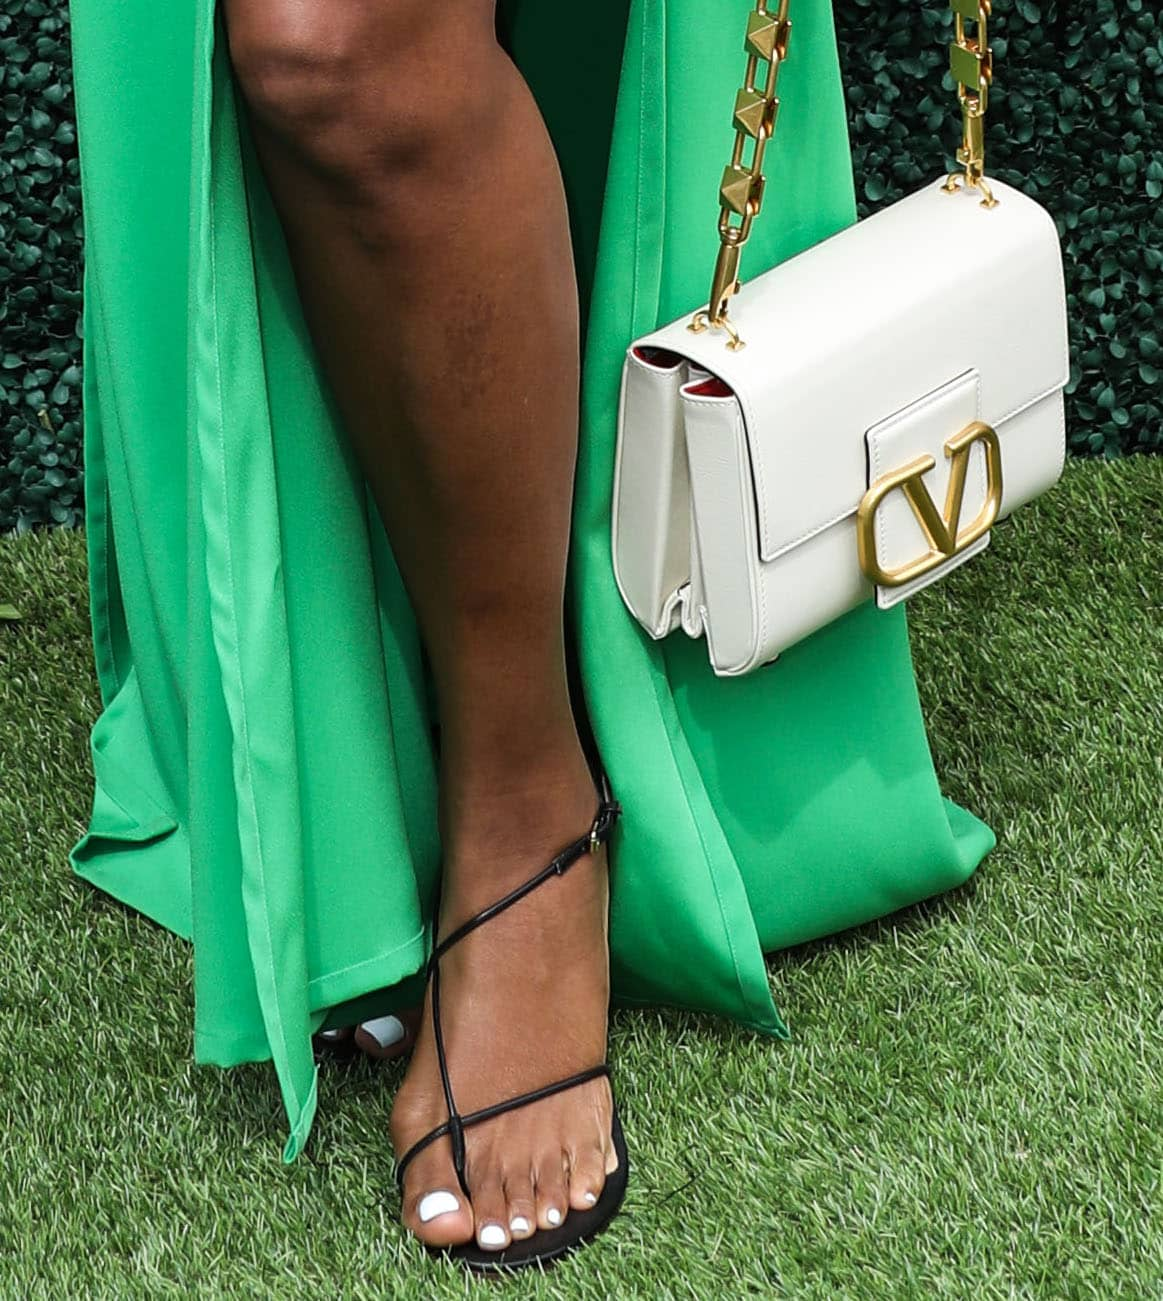 Gabrielle Union completes her afternoon look with a white Valentino bag and a pair of Emme Parsons flat sandals